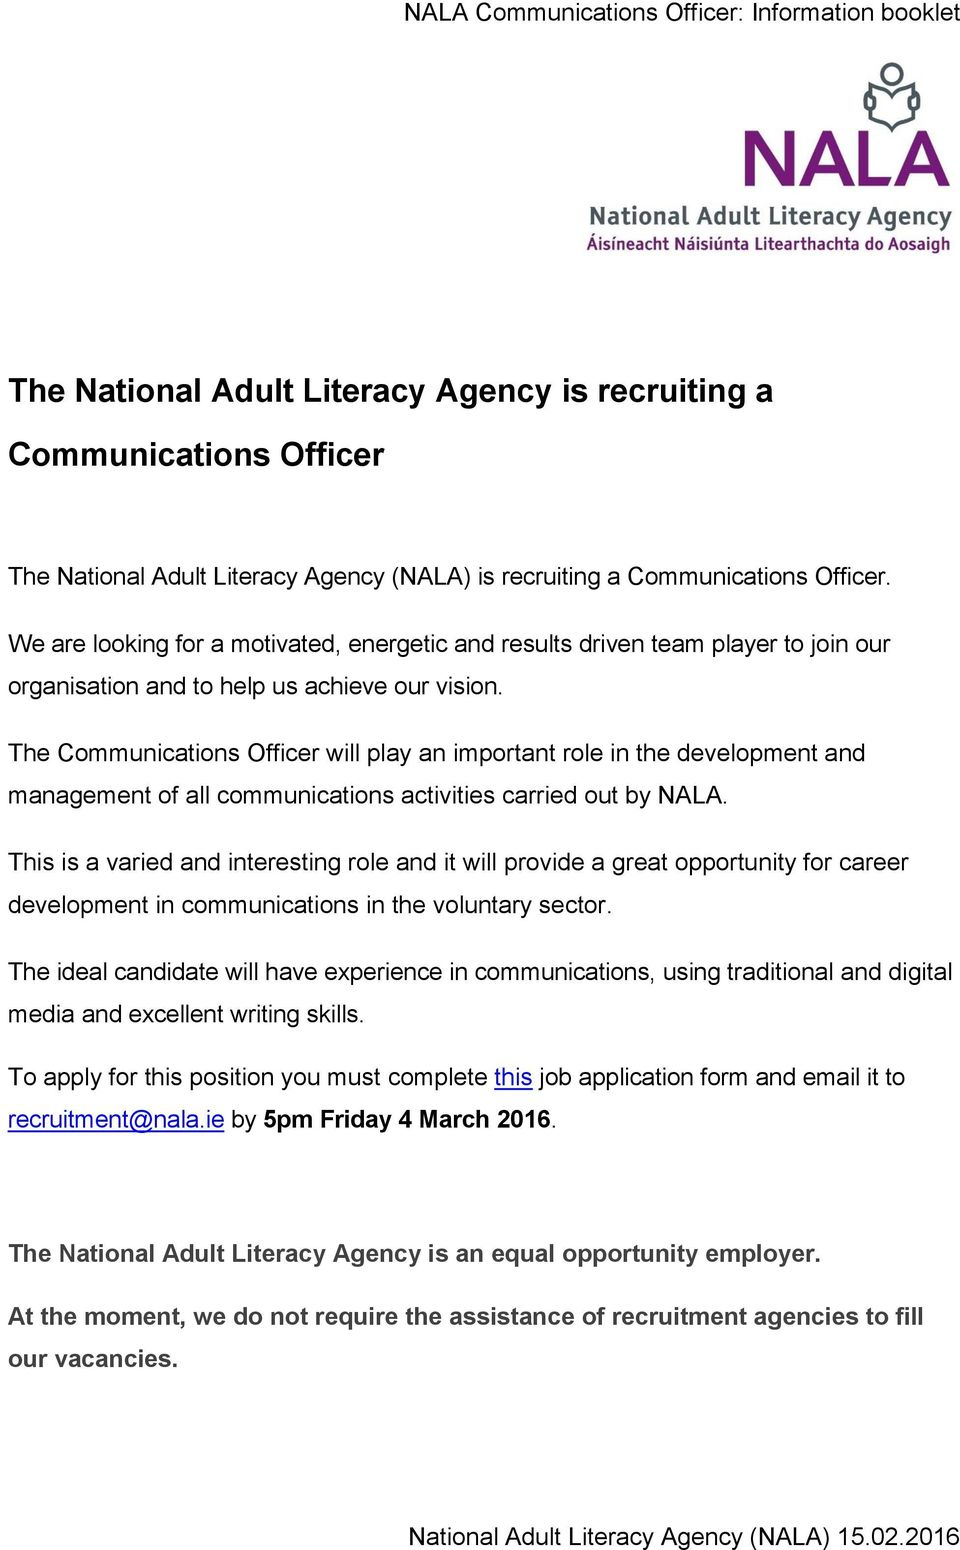 The Communications Officer will play an important role in the development and management of all communications activities carried out by NALA.